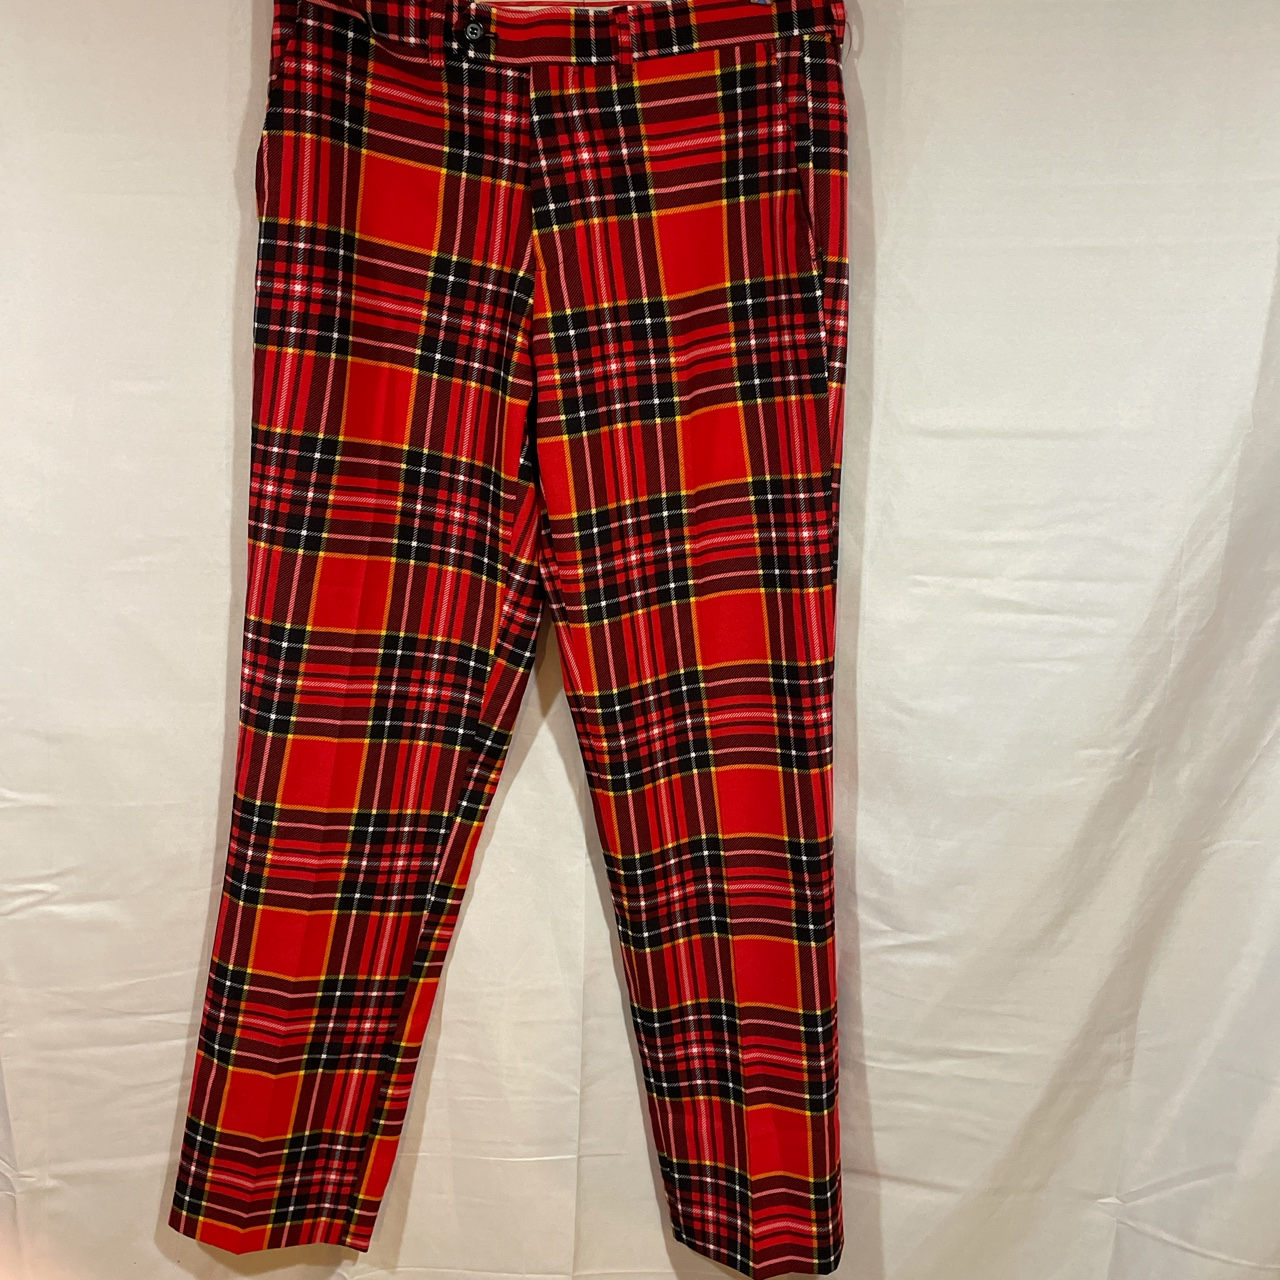 Product Image 1 - Opposuits red plaid pants Size us40 Waist